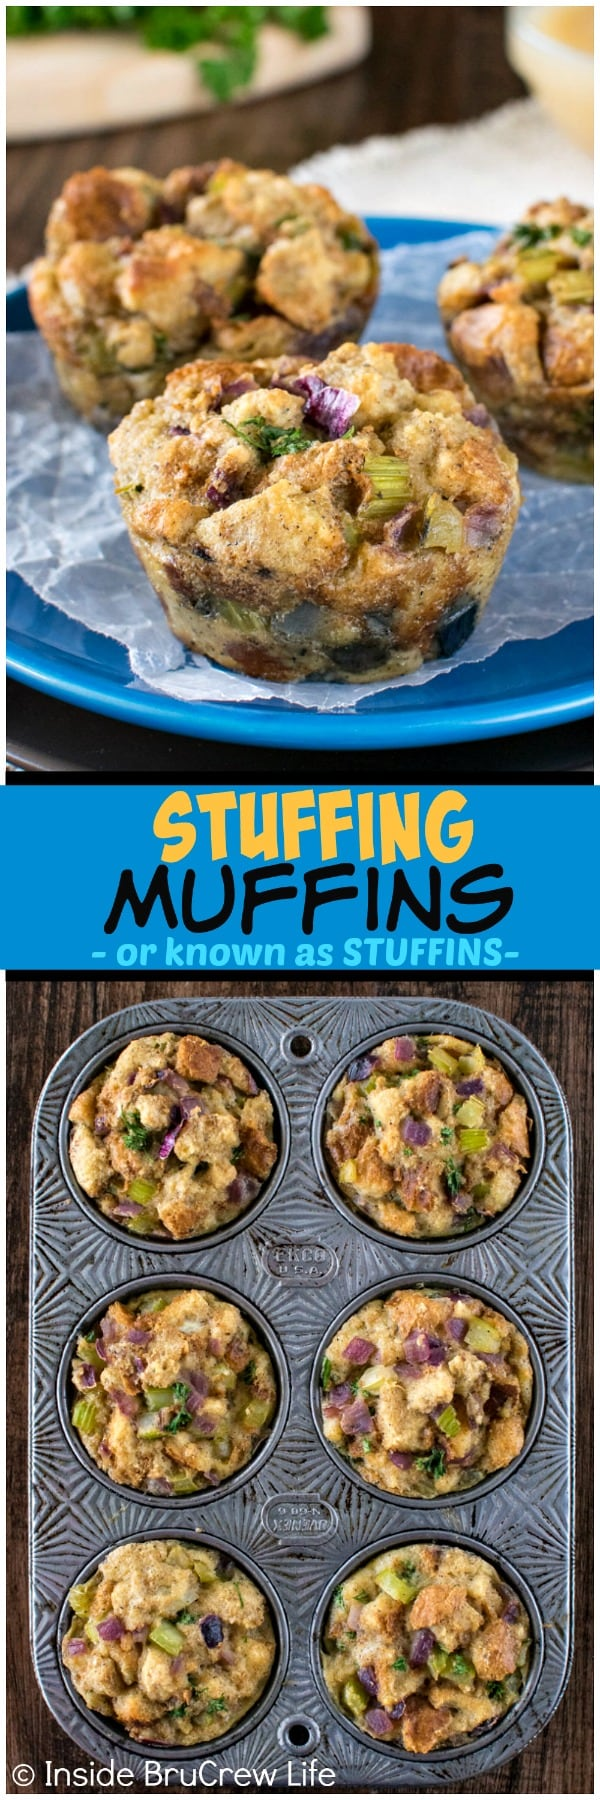 Stuffing Muffins - bake this easy stuffing recipe in a muffin tin for a fun and delicious way to change up the traditional side dish for Thanksgiving! #dinner #stuffing #thanksgiving #holiday #stuffins #sidedish